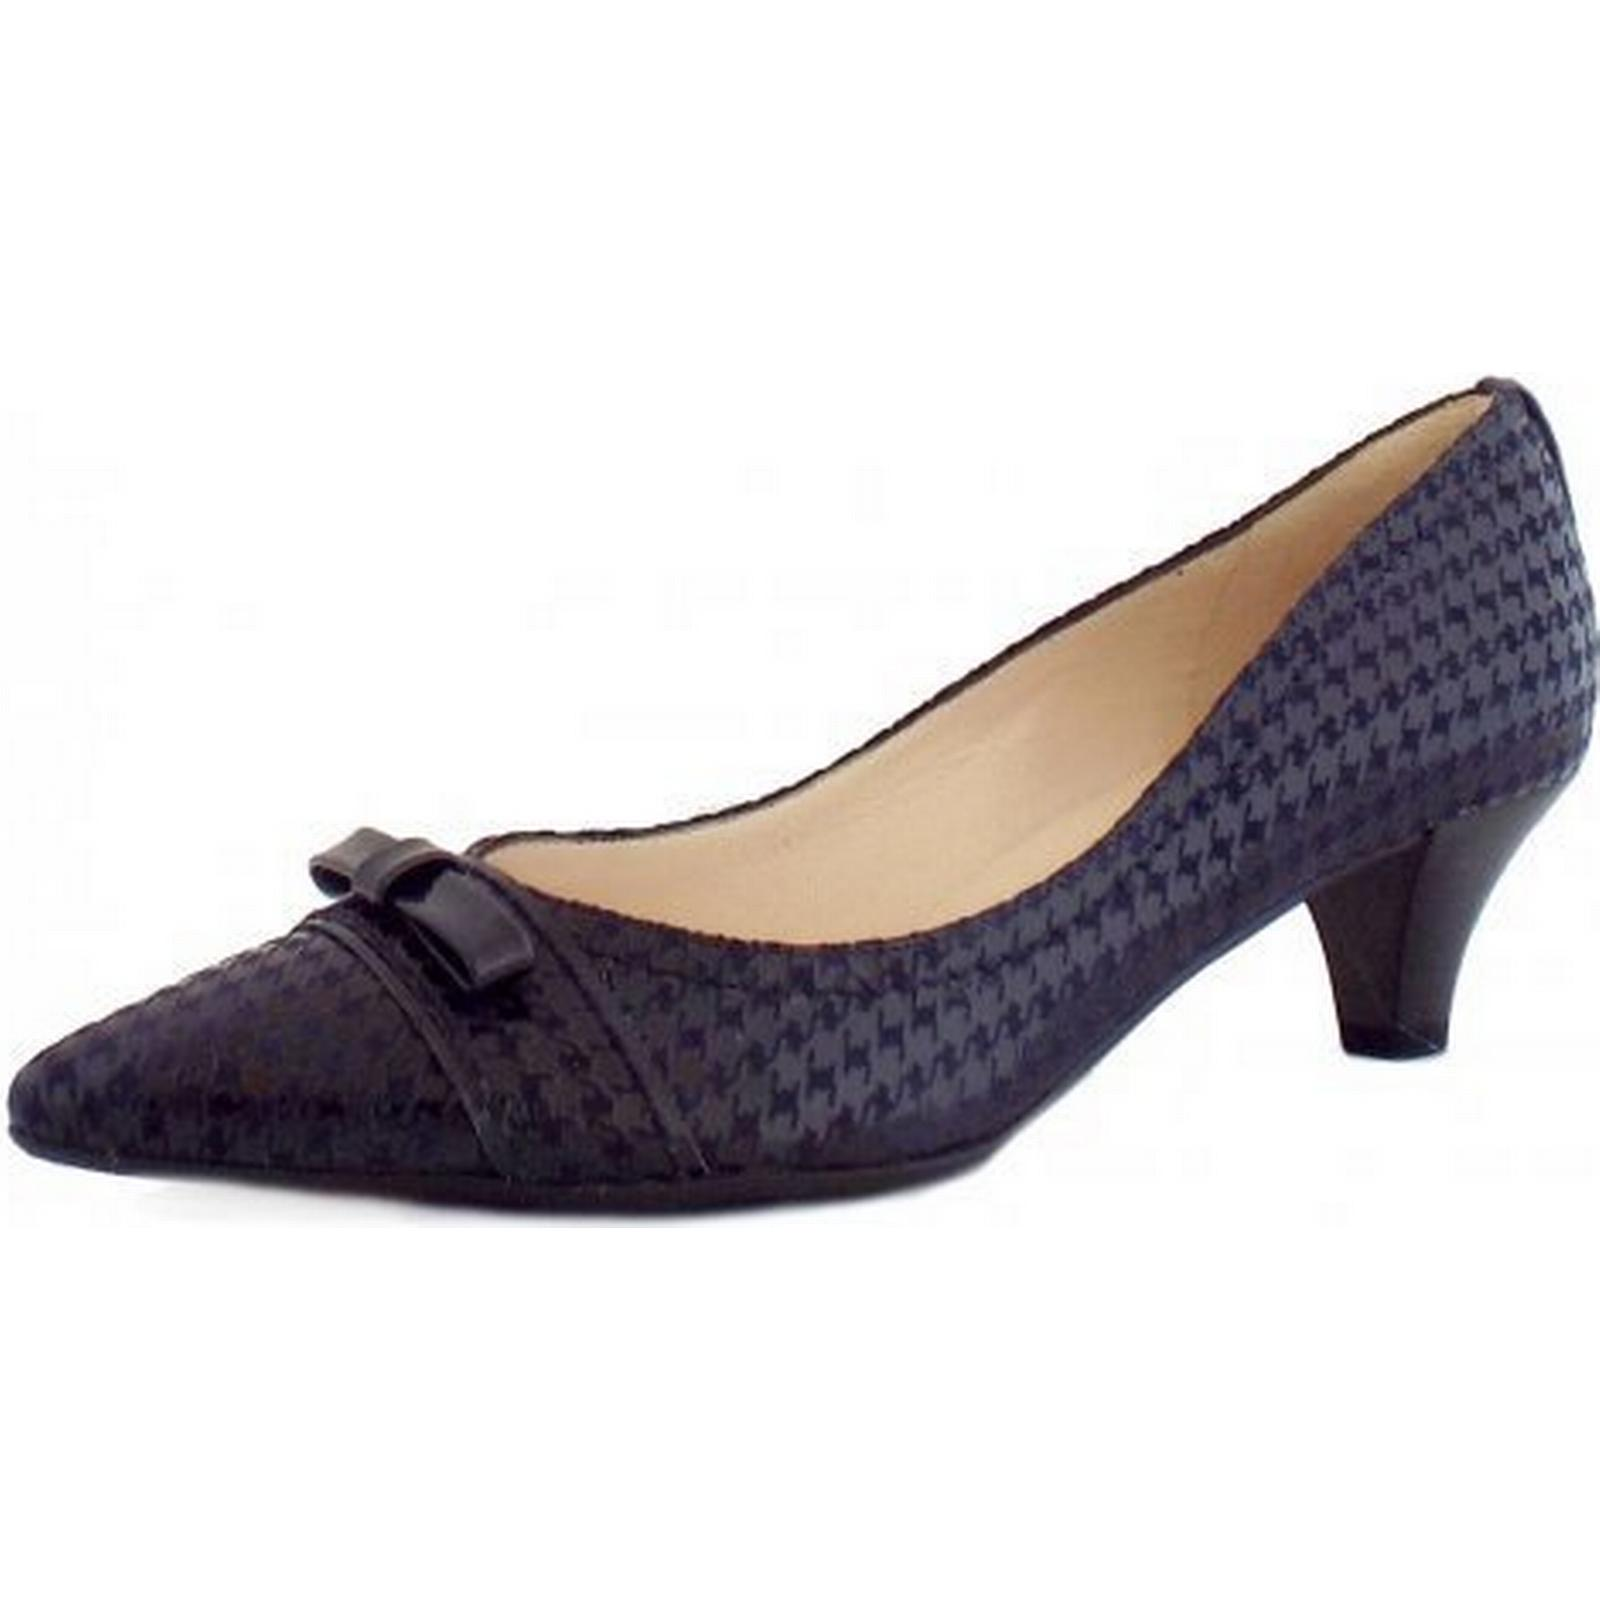 Peter Kaiser Donita Ladies Kitten Heel in in Heel Navy Check Size: 7 bbc93a